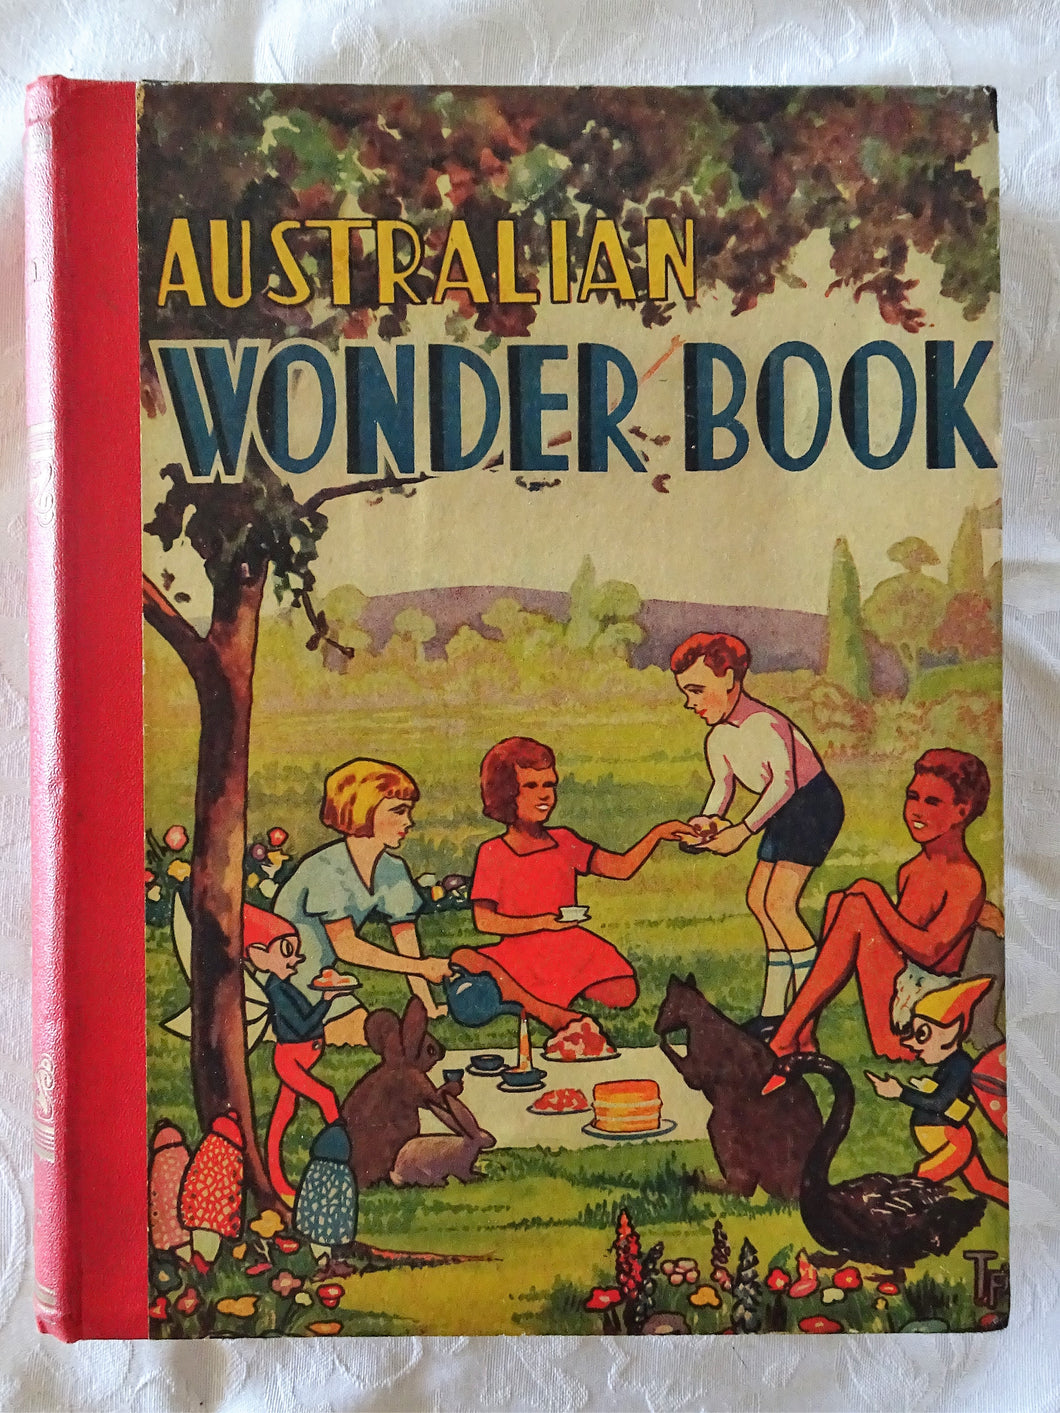 The Australian Wonder Book